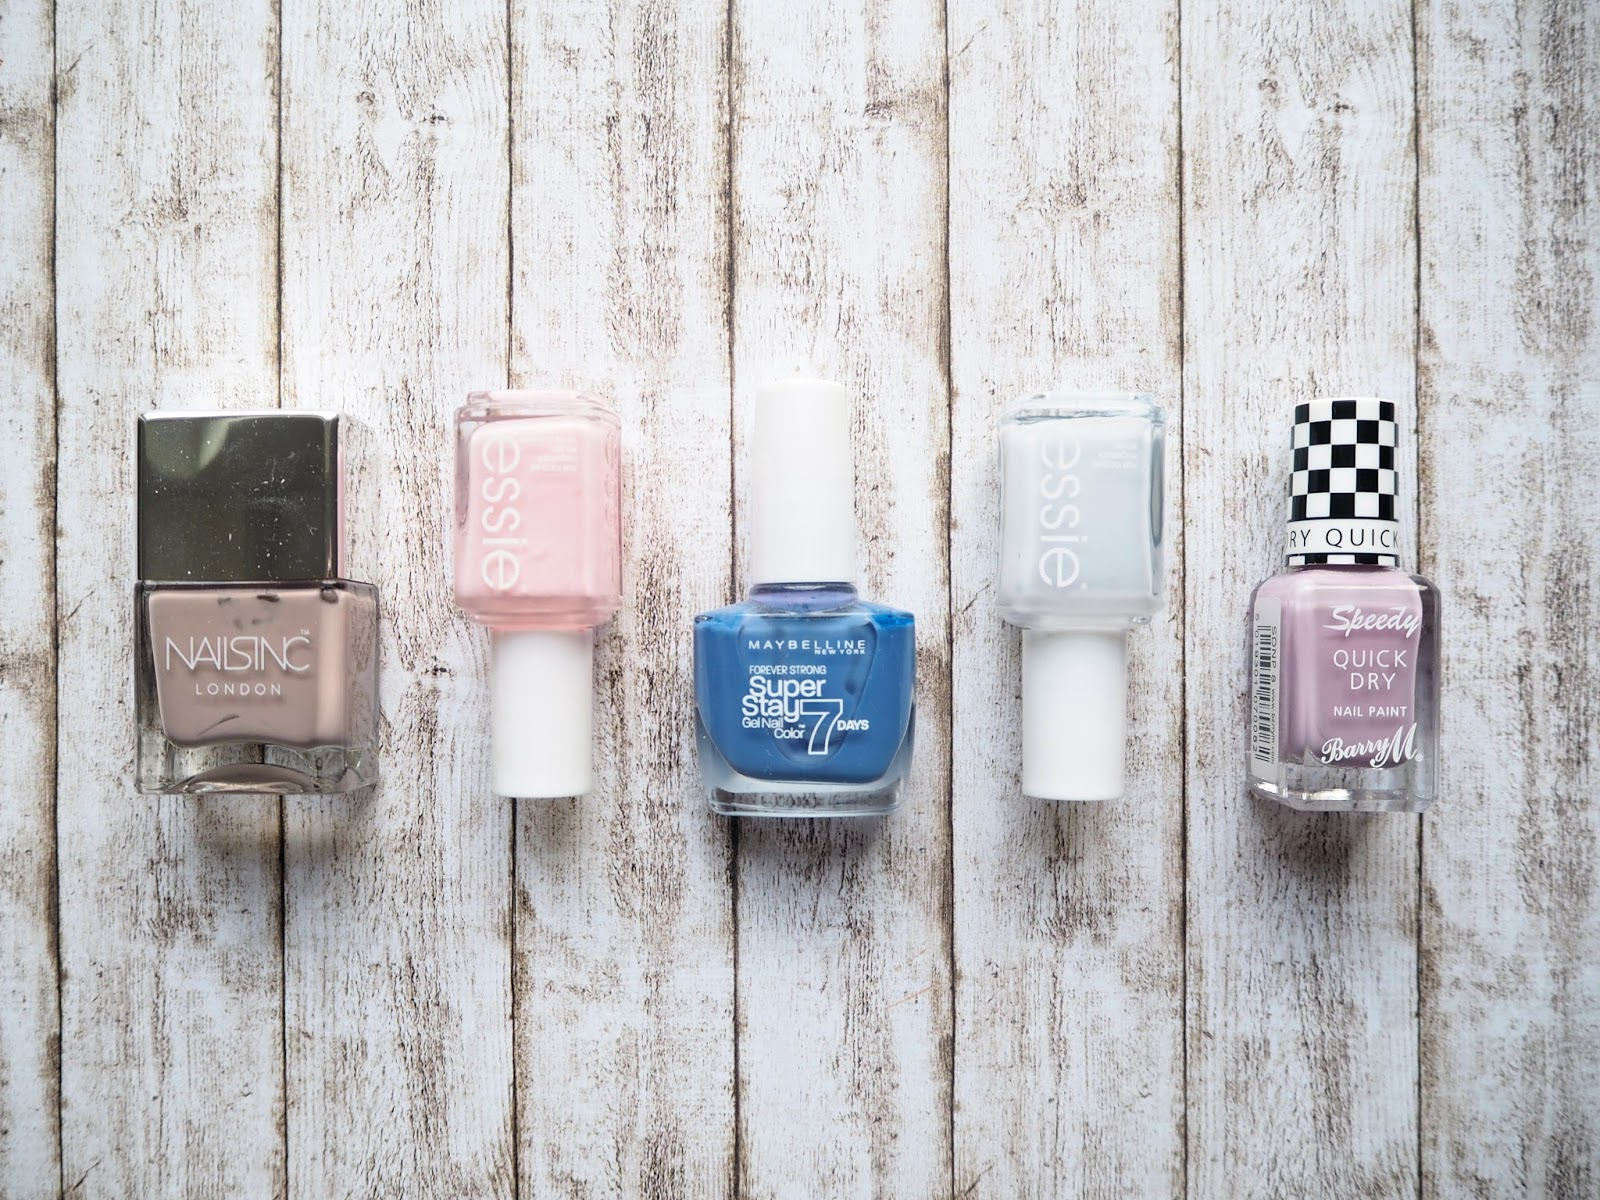 Winter to Spring: Transitional Nail Shades, spring nail polish, essie, nails inc, maybelline, barrry m, romper room, hubby for dessert, surreal, lap of honour, porchester square